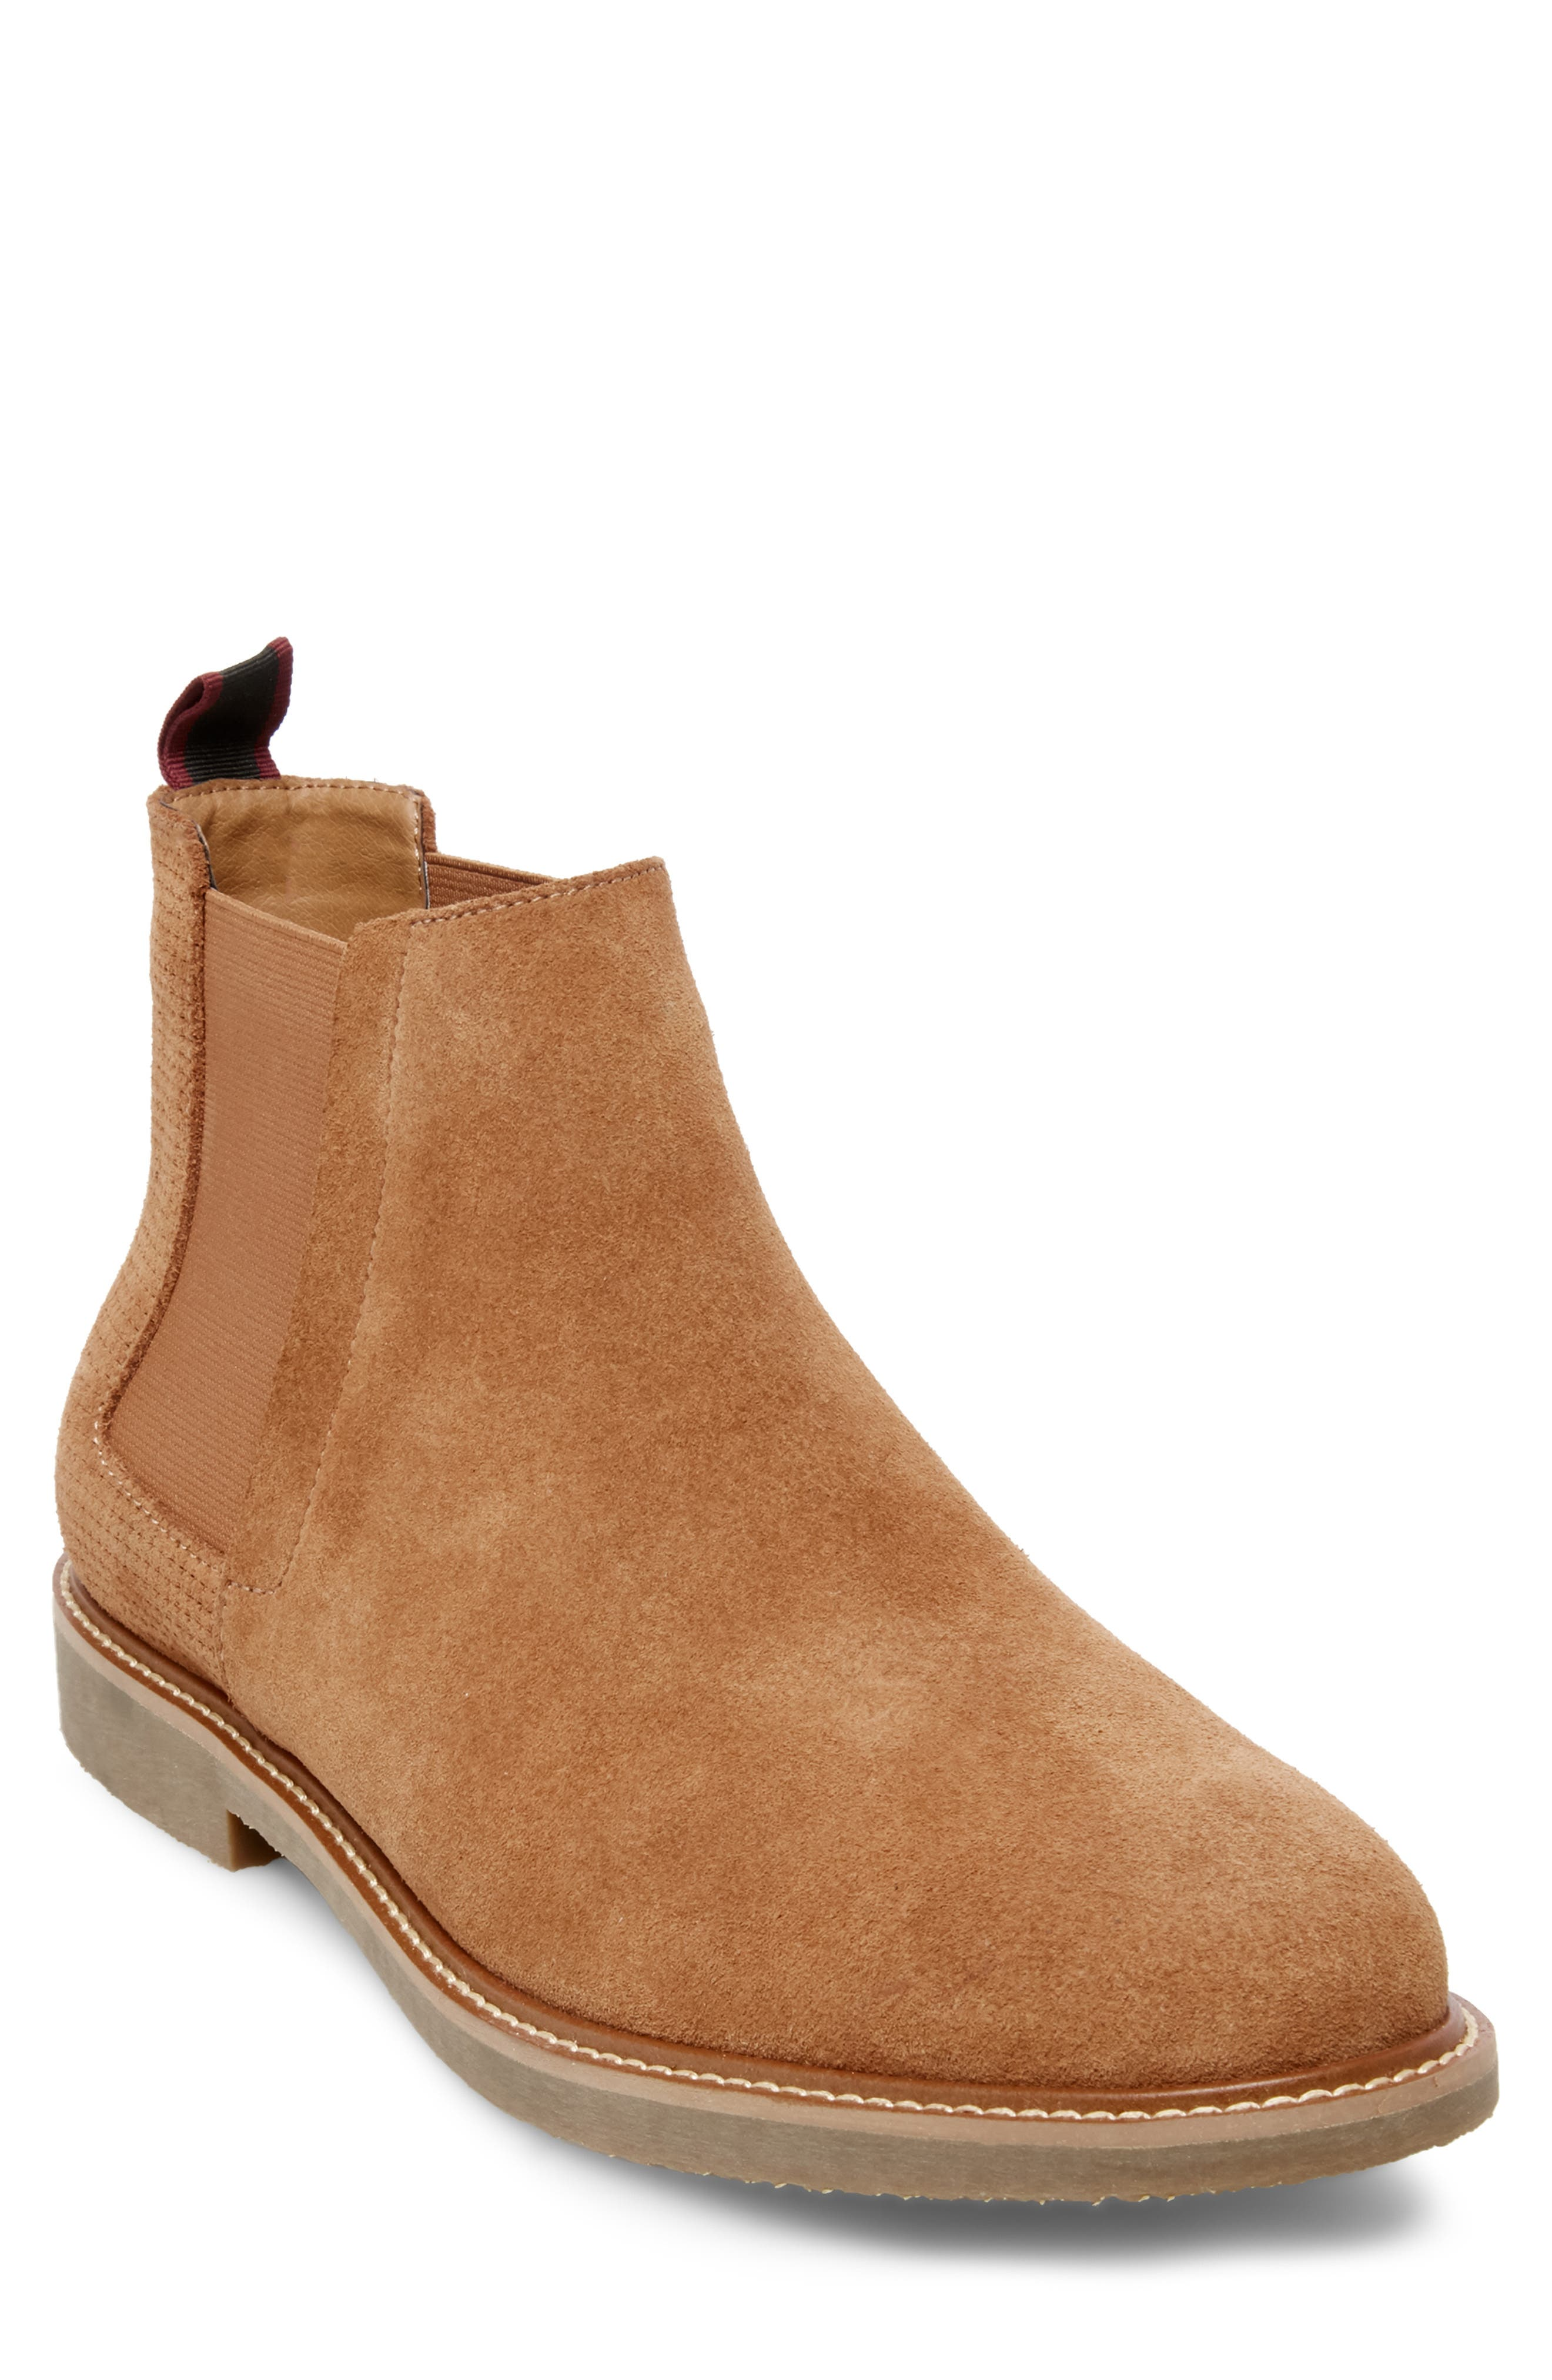 Steve Madden Highlyte Textured Chelsea Boot- Brown